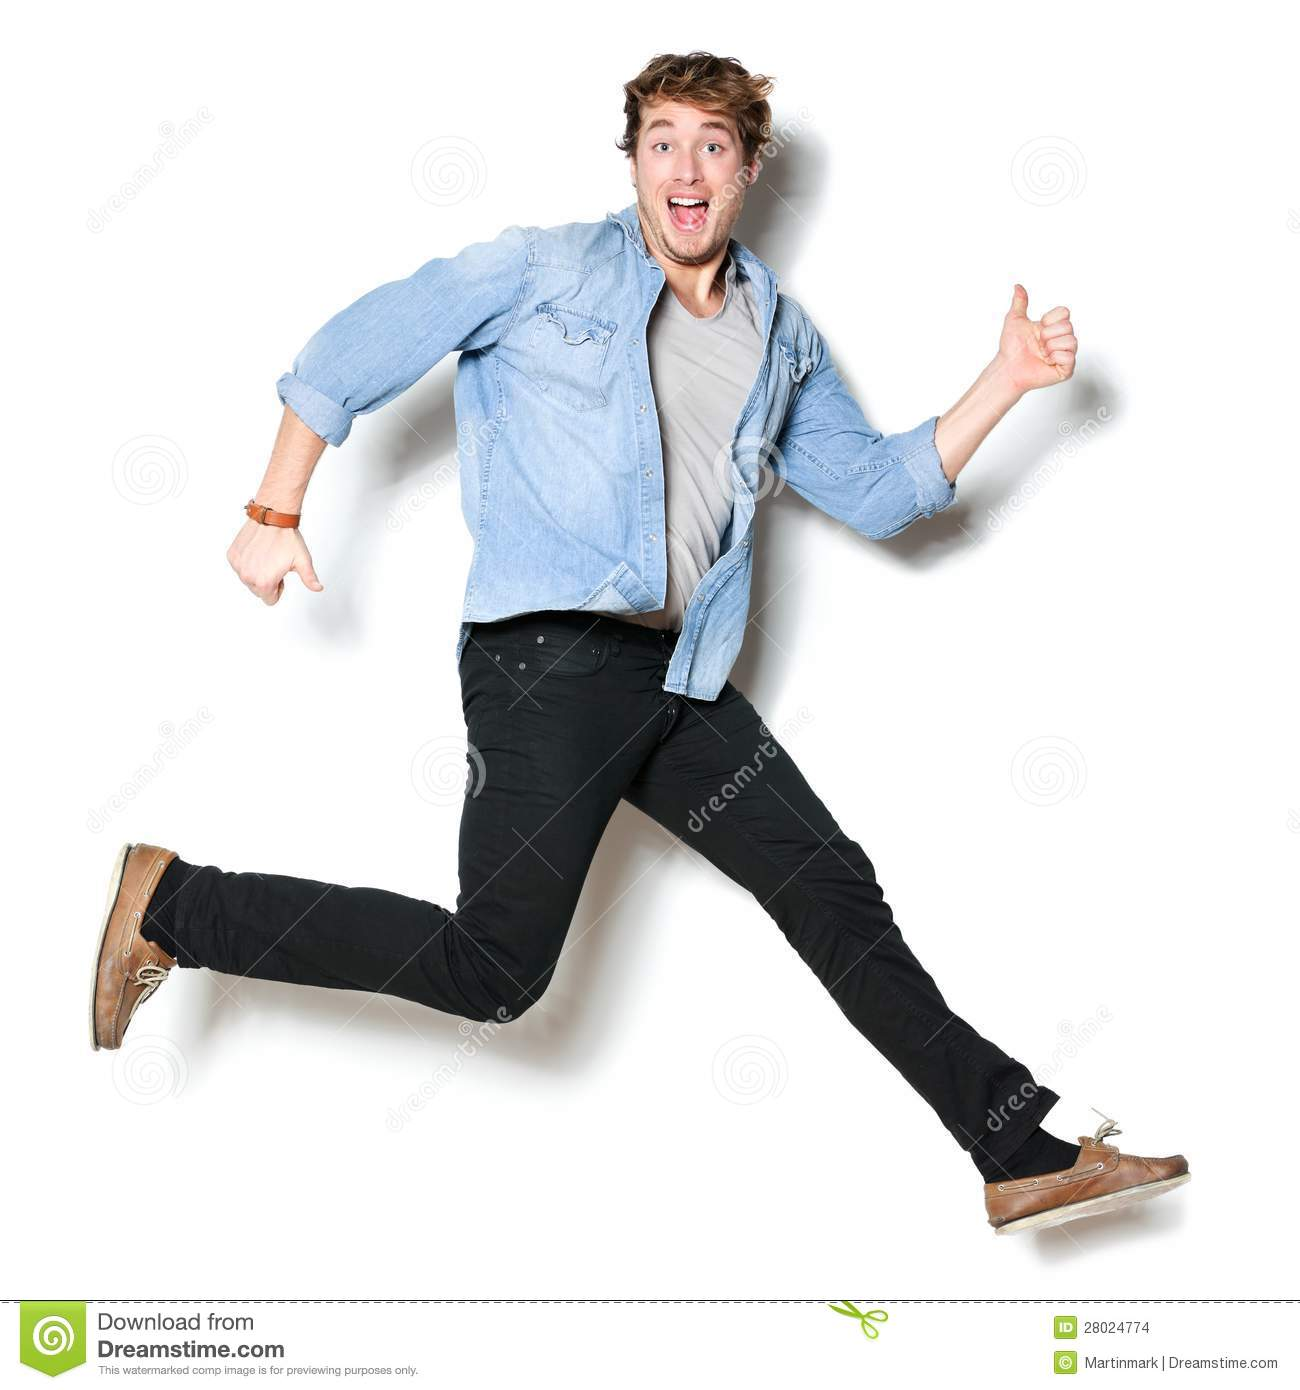 Jumping man happy excited